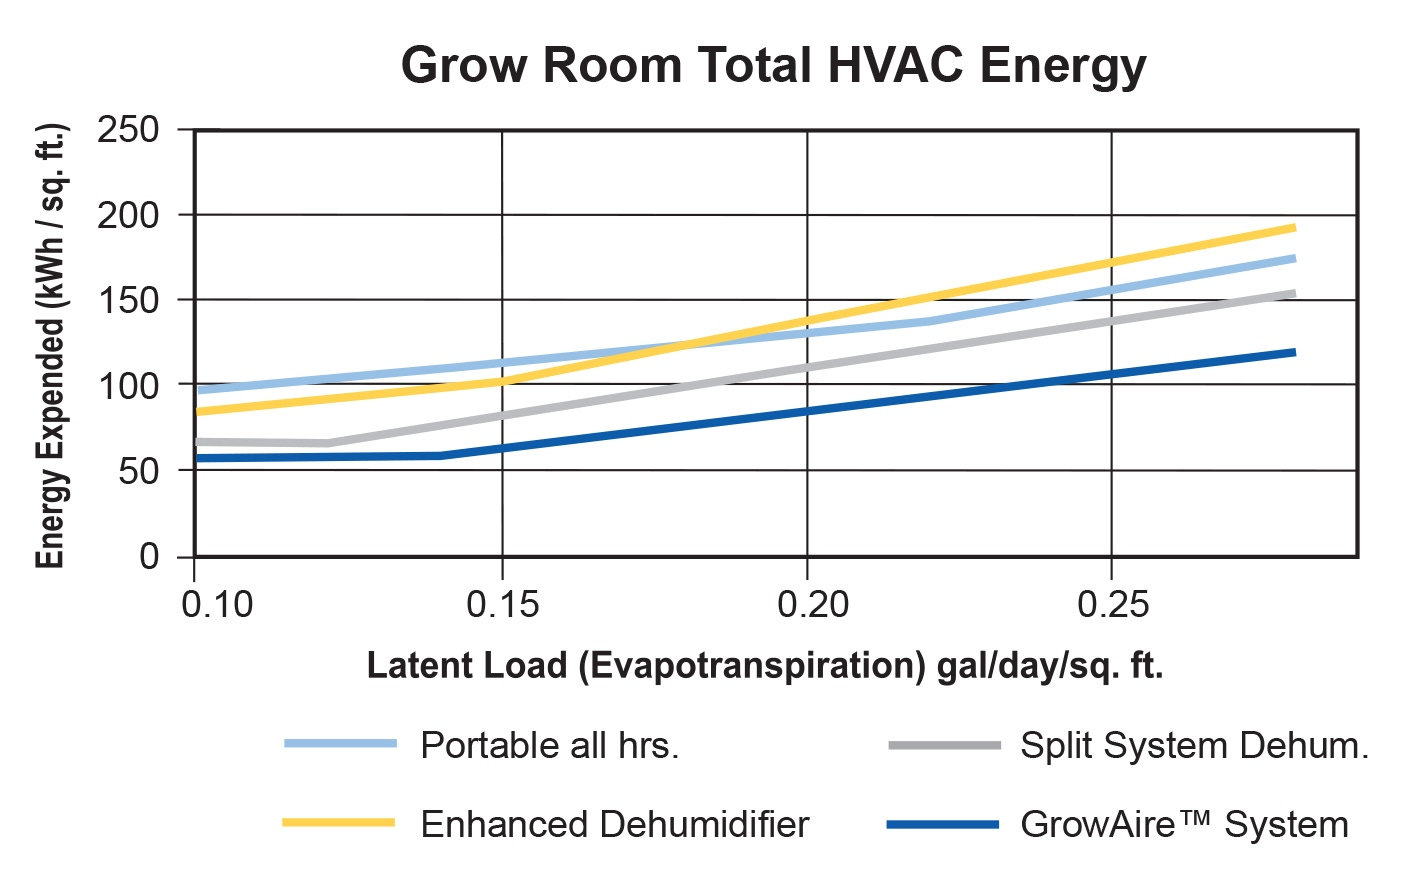 Grow Room Total HVAC Energy Comparison